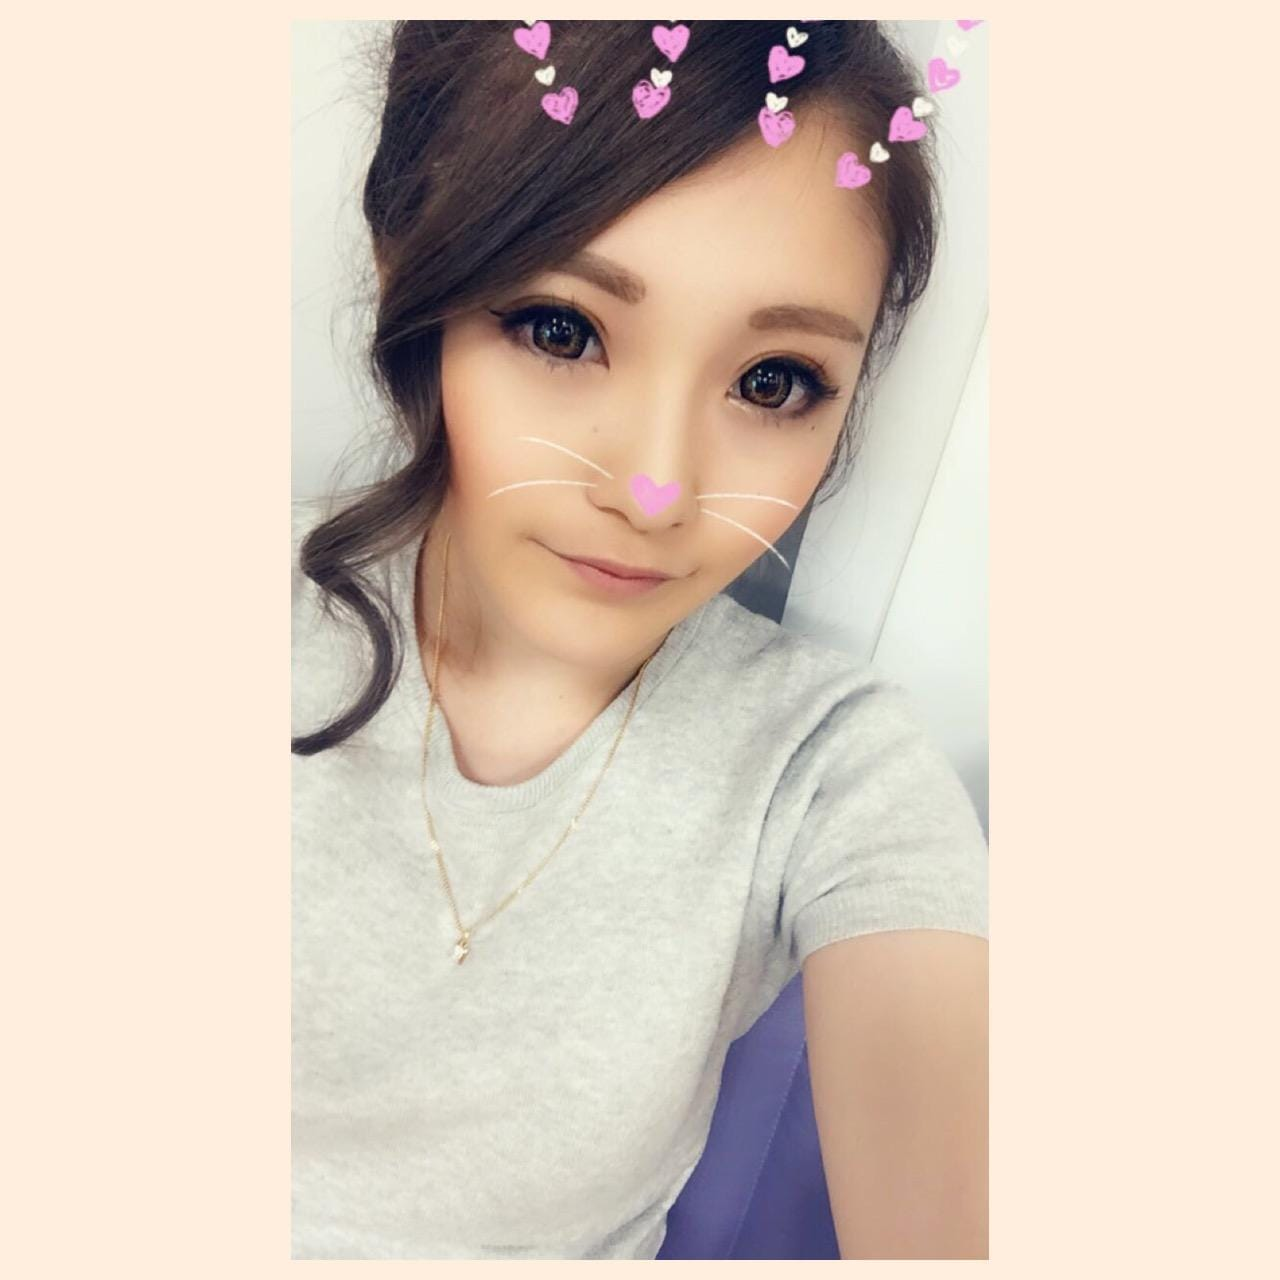 「〜Thank you very much〜」06/22日(金) 01:31   みらのの写メ・風俗動画